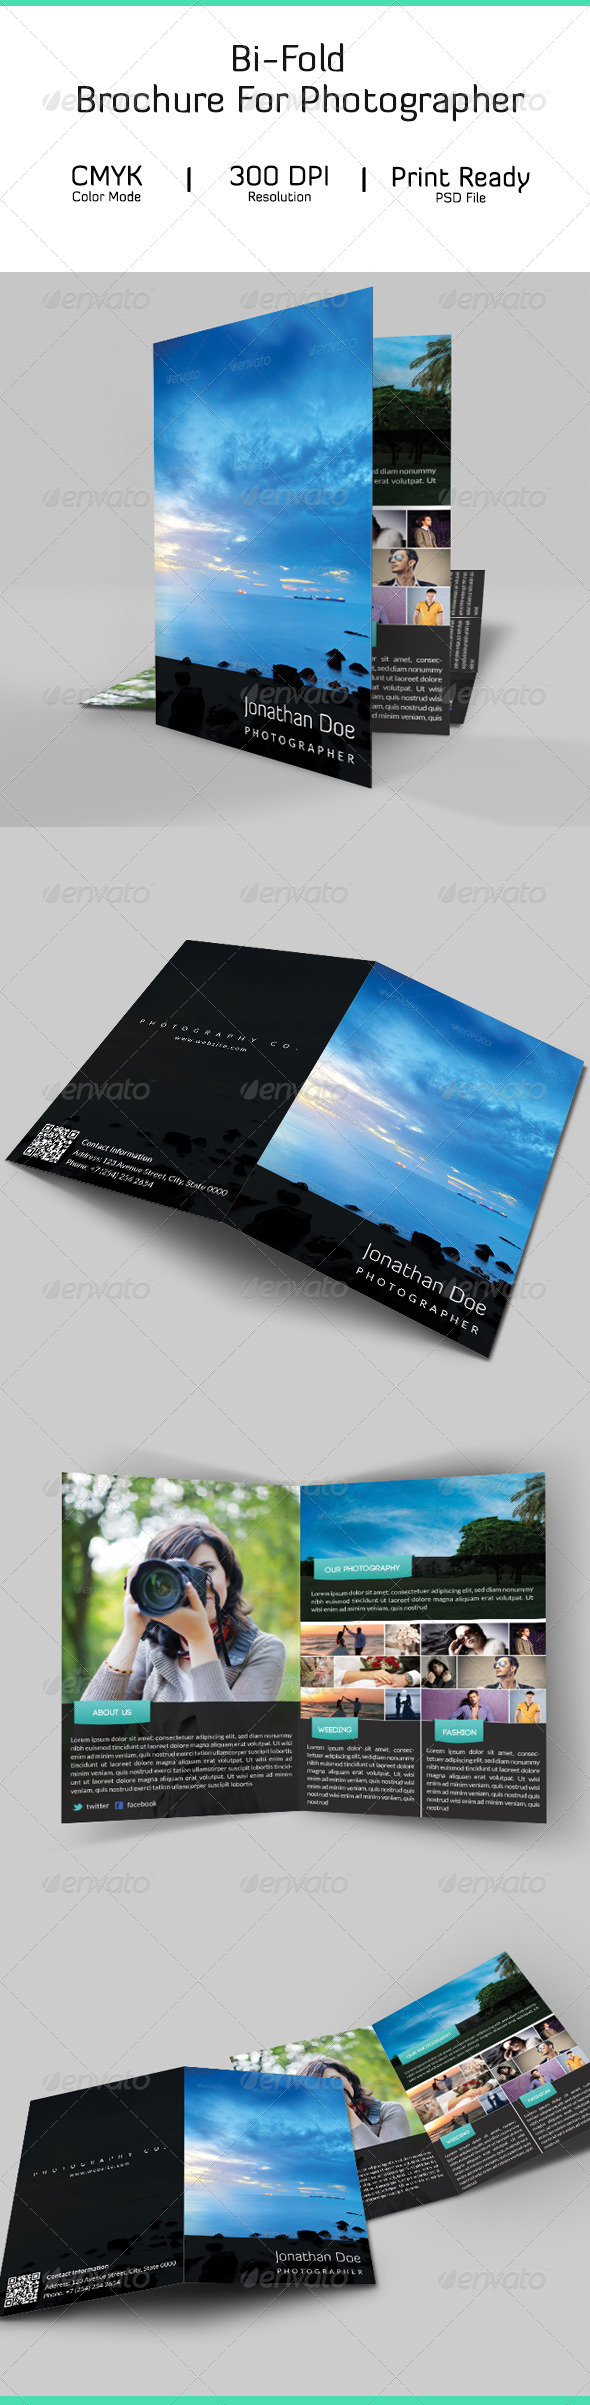 GraphicRiver Bi-Fold Brochure For Photographer 6965109